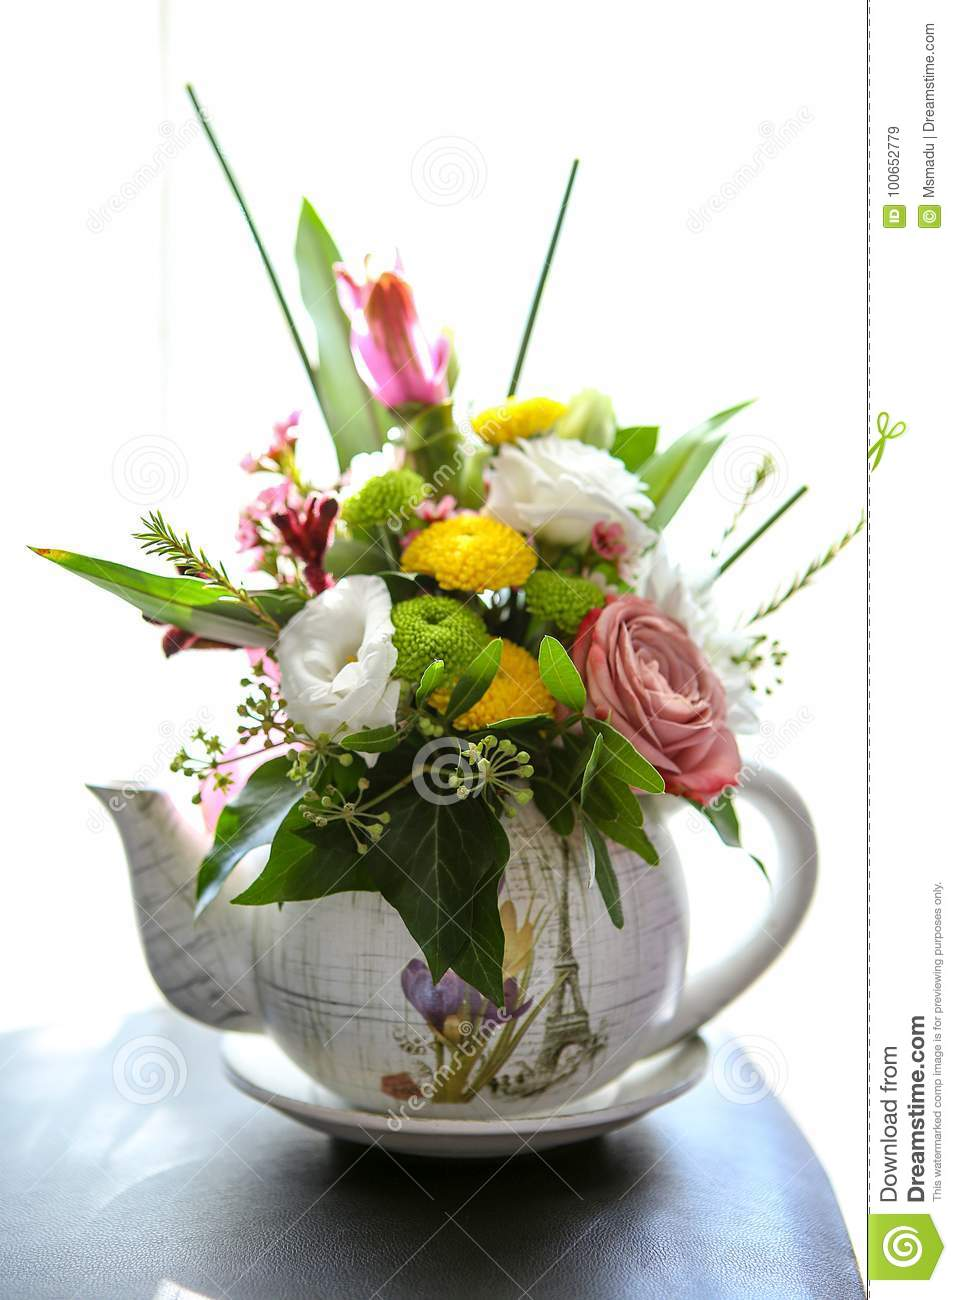 262 & Beautiful Floral Arrangement Stock Image - Image of teapot ...